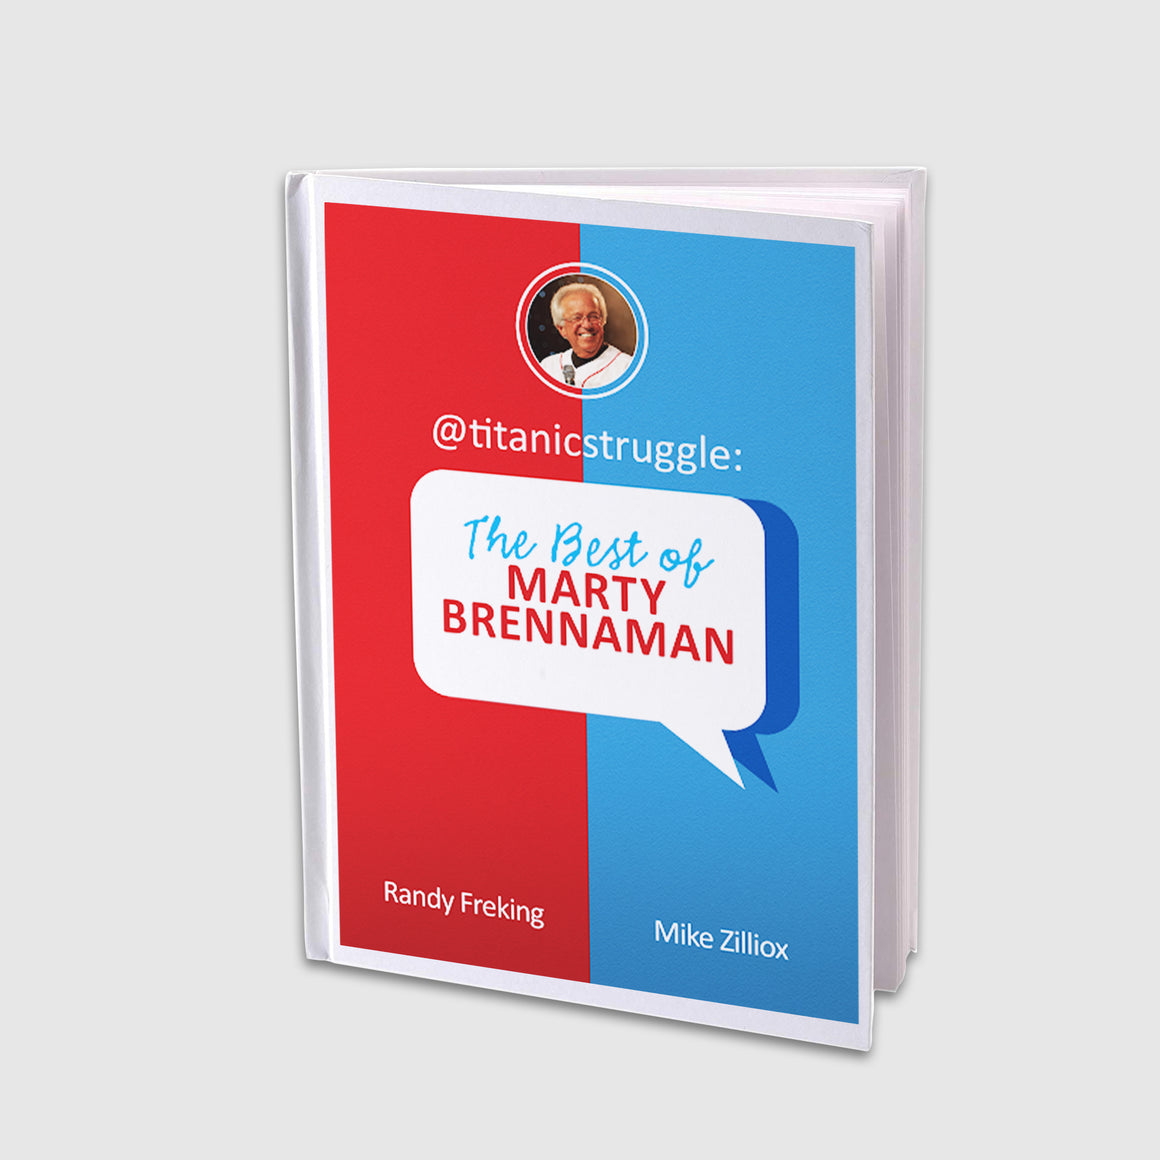 @titanicstruggle: The Best of Marty Brennaman Book - Cincy Shirts